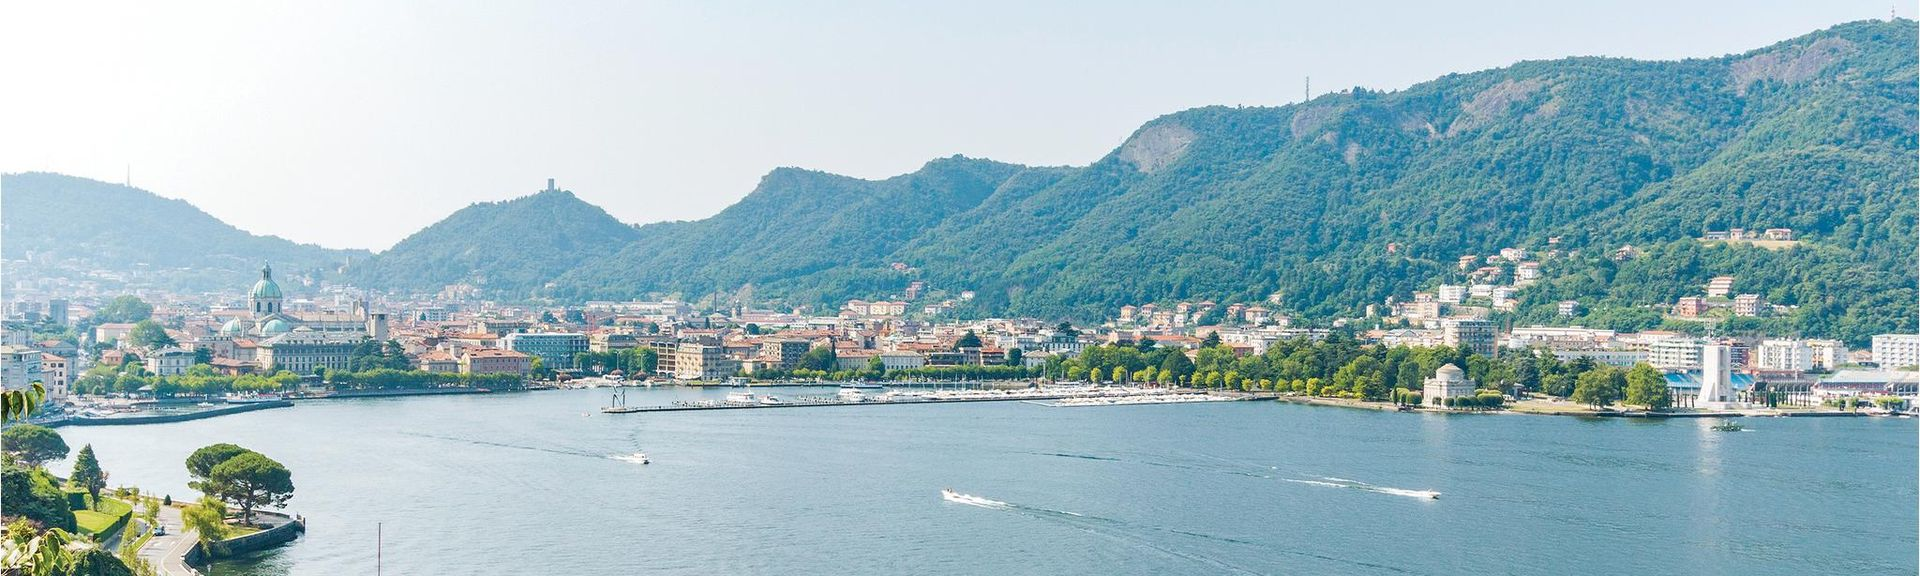 Varese (province), Lombardy, Italy